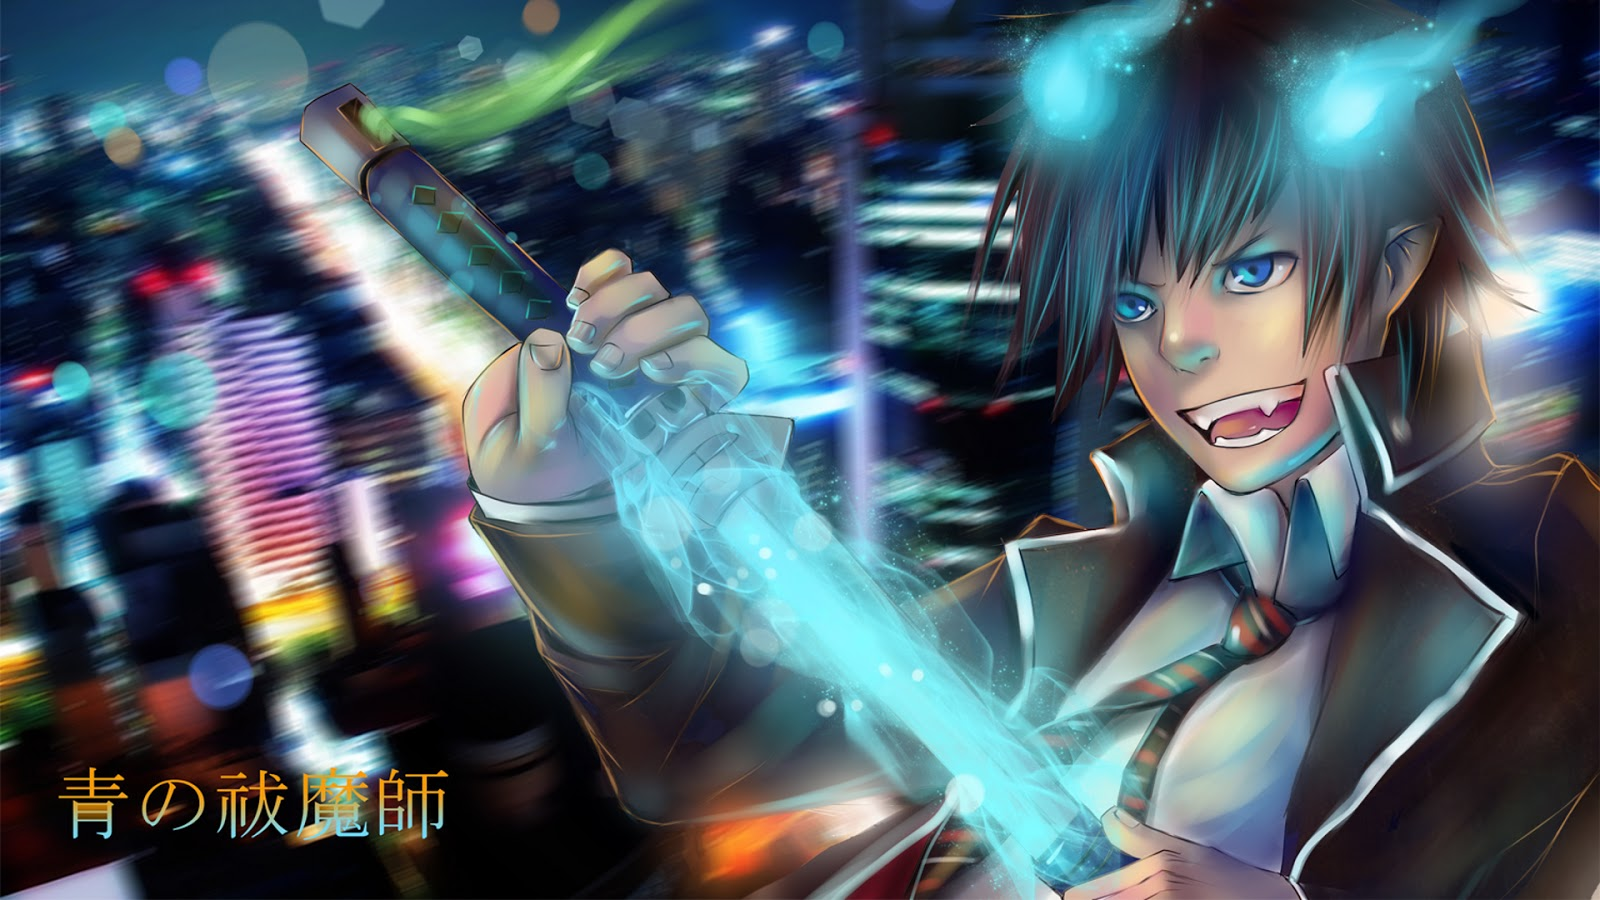 Hd Wallpaper Rin Okumura Ao No Exorcist Sword 0023